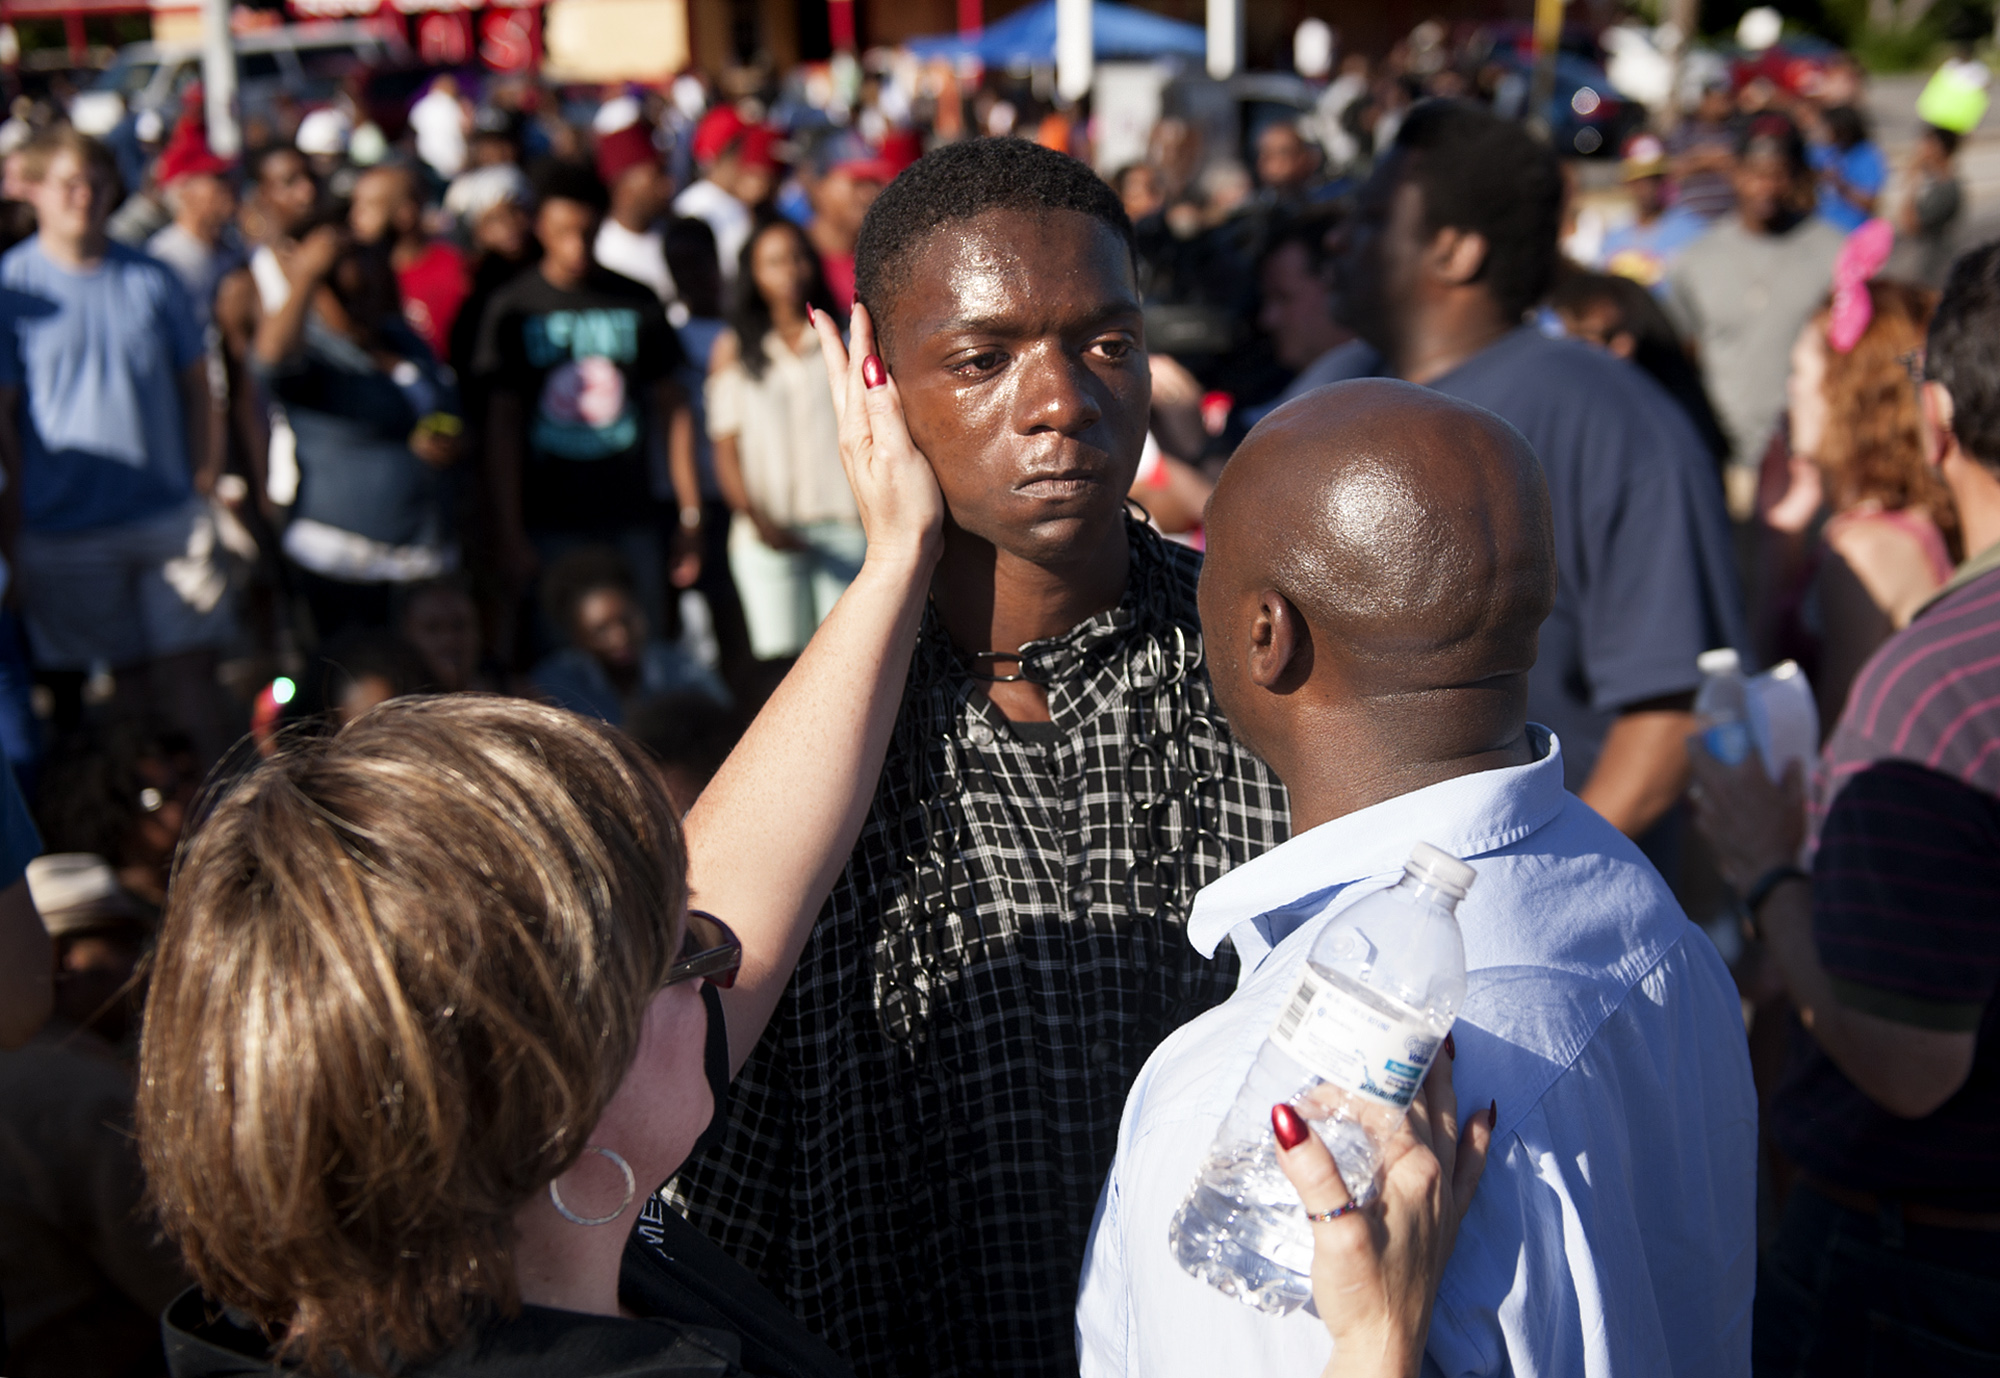 The Rev. Willis Johnson (right) talks to 18-year-old Joshua Wilson as protesters defy police and block traffic on West Florissant Avenue at Canfield Drive in Ferguson, Mo. on Aug. 13, 2014.